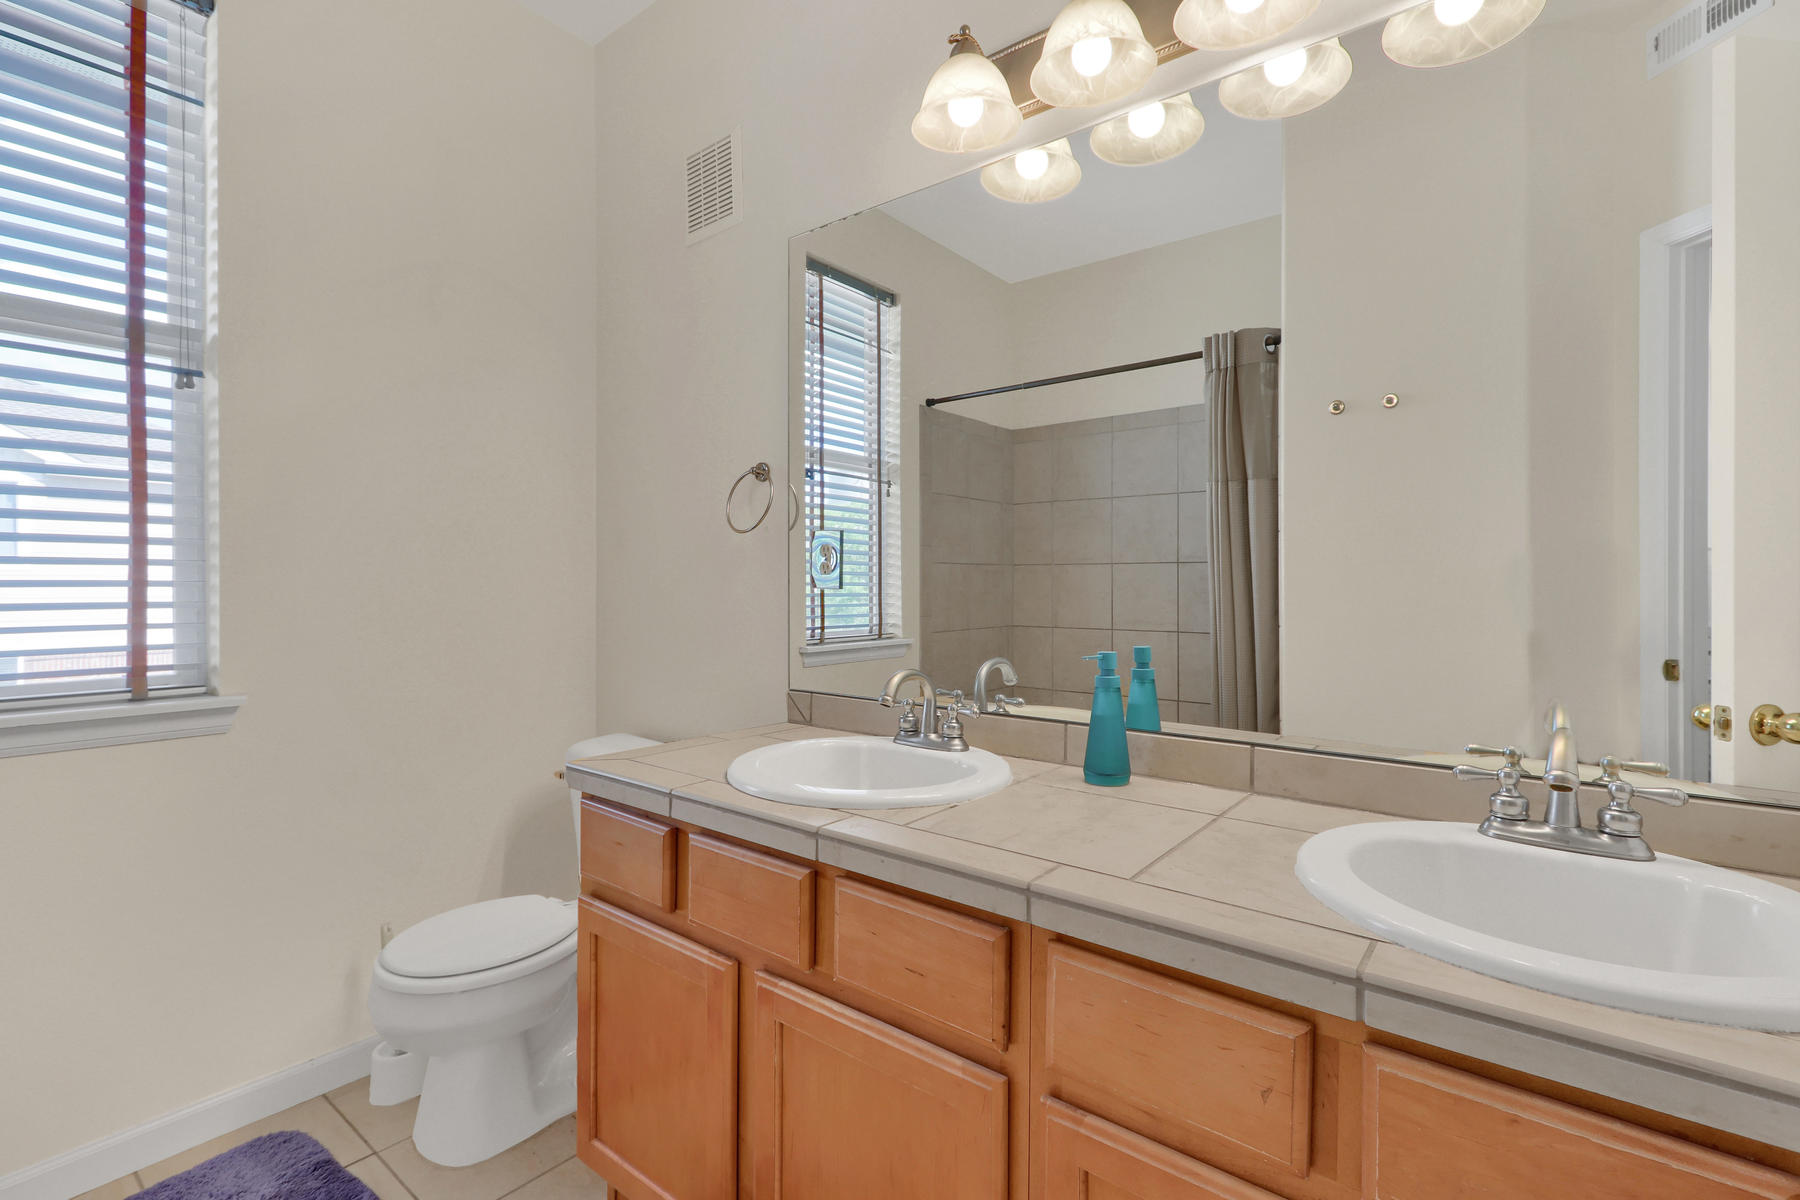 10089 W 55th Drive 204 Arvada-014-015-Bathroom-MLS_Size.jpg